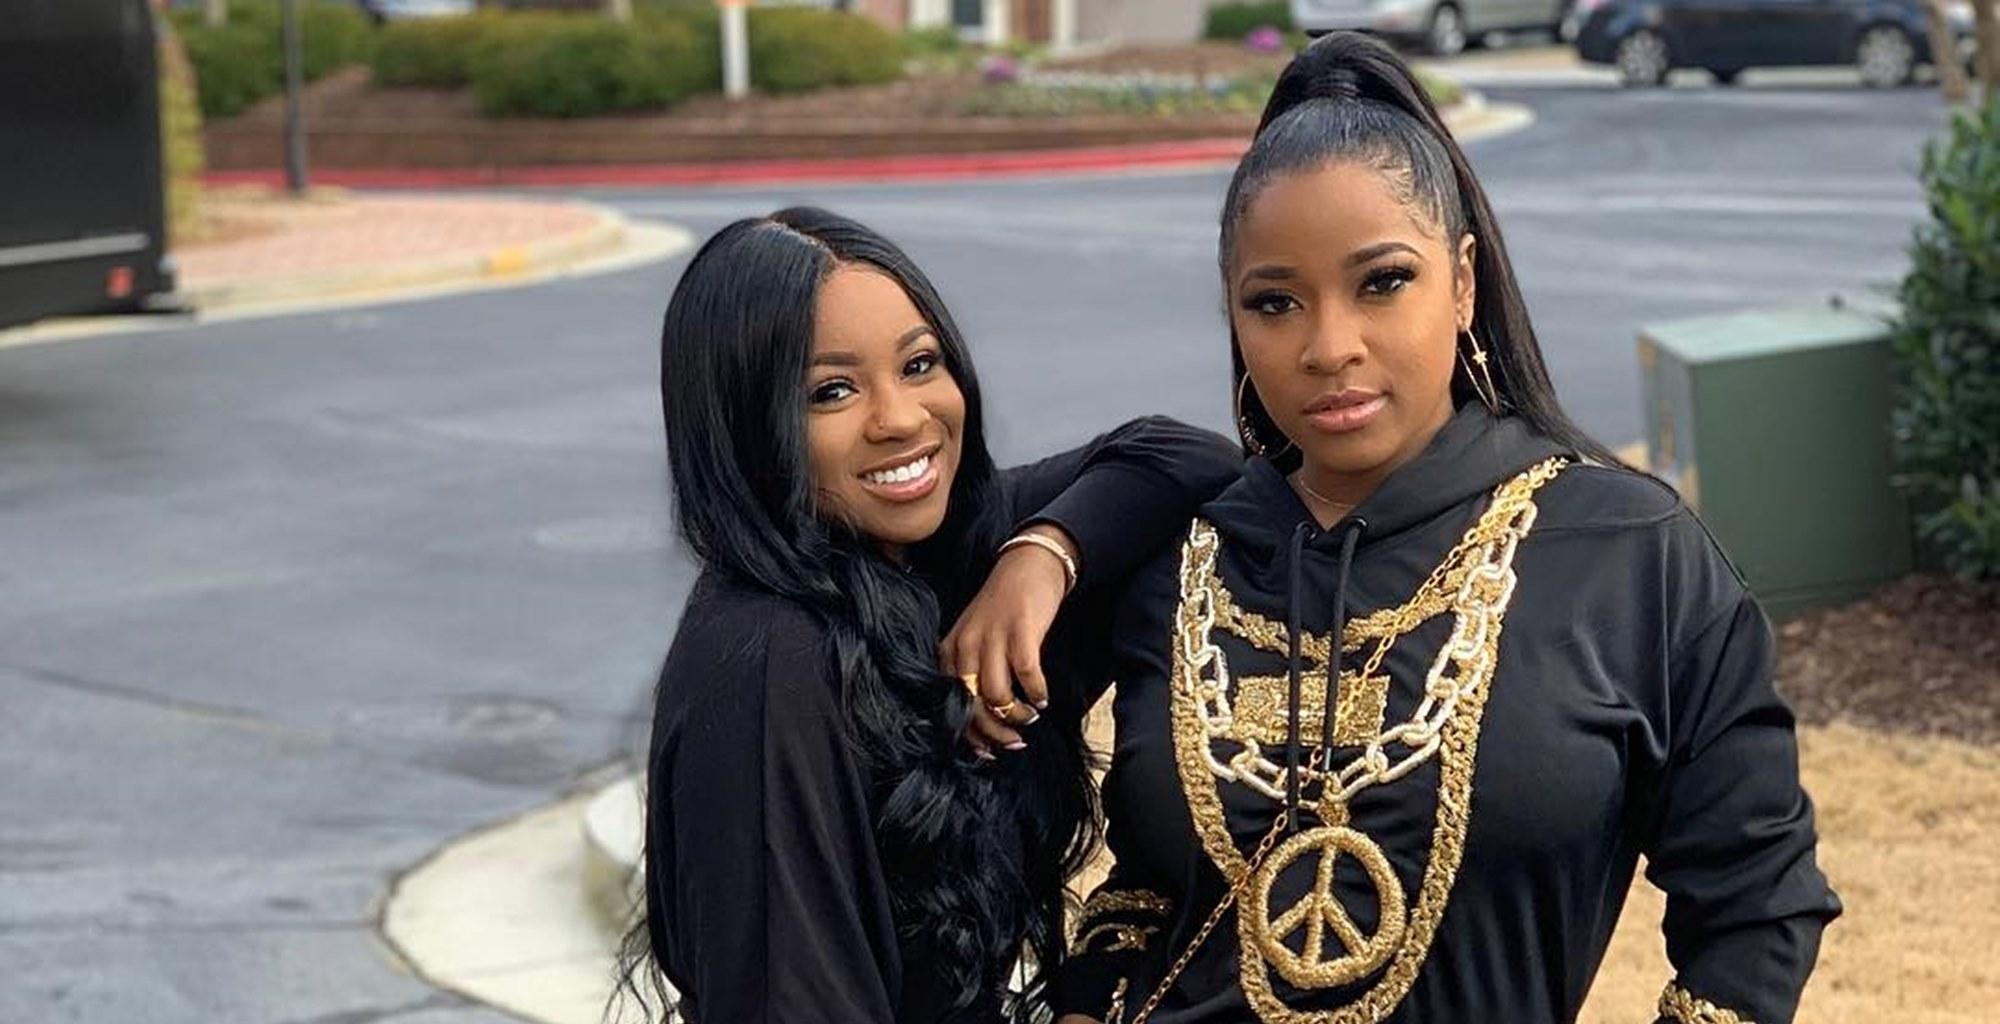 Toya Johnson Makes Fans Excited With This Announcement